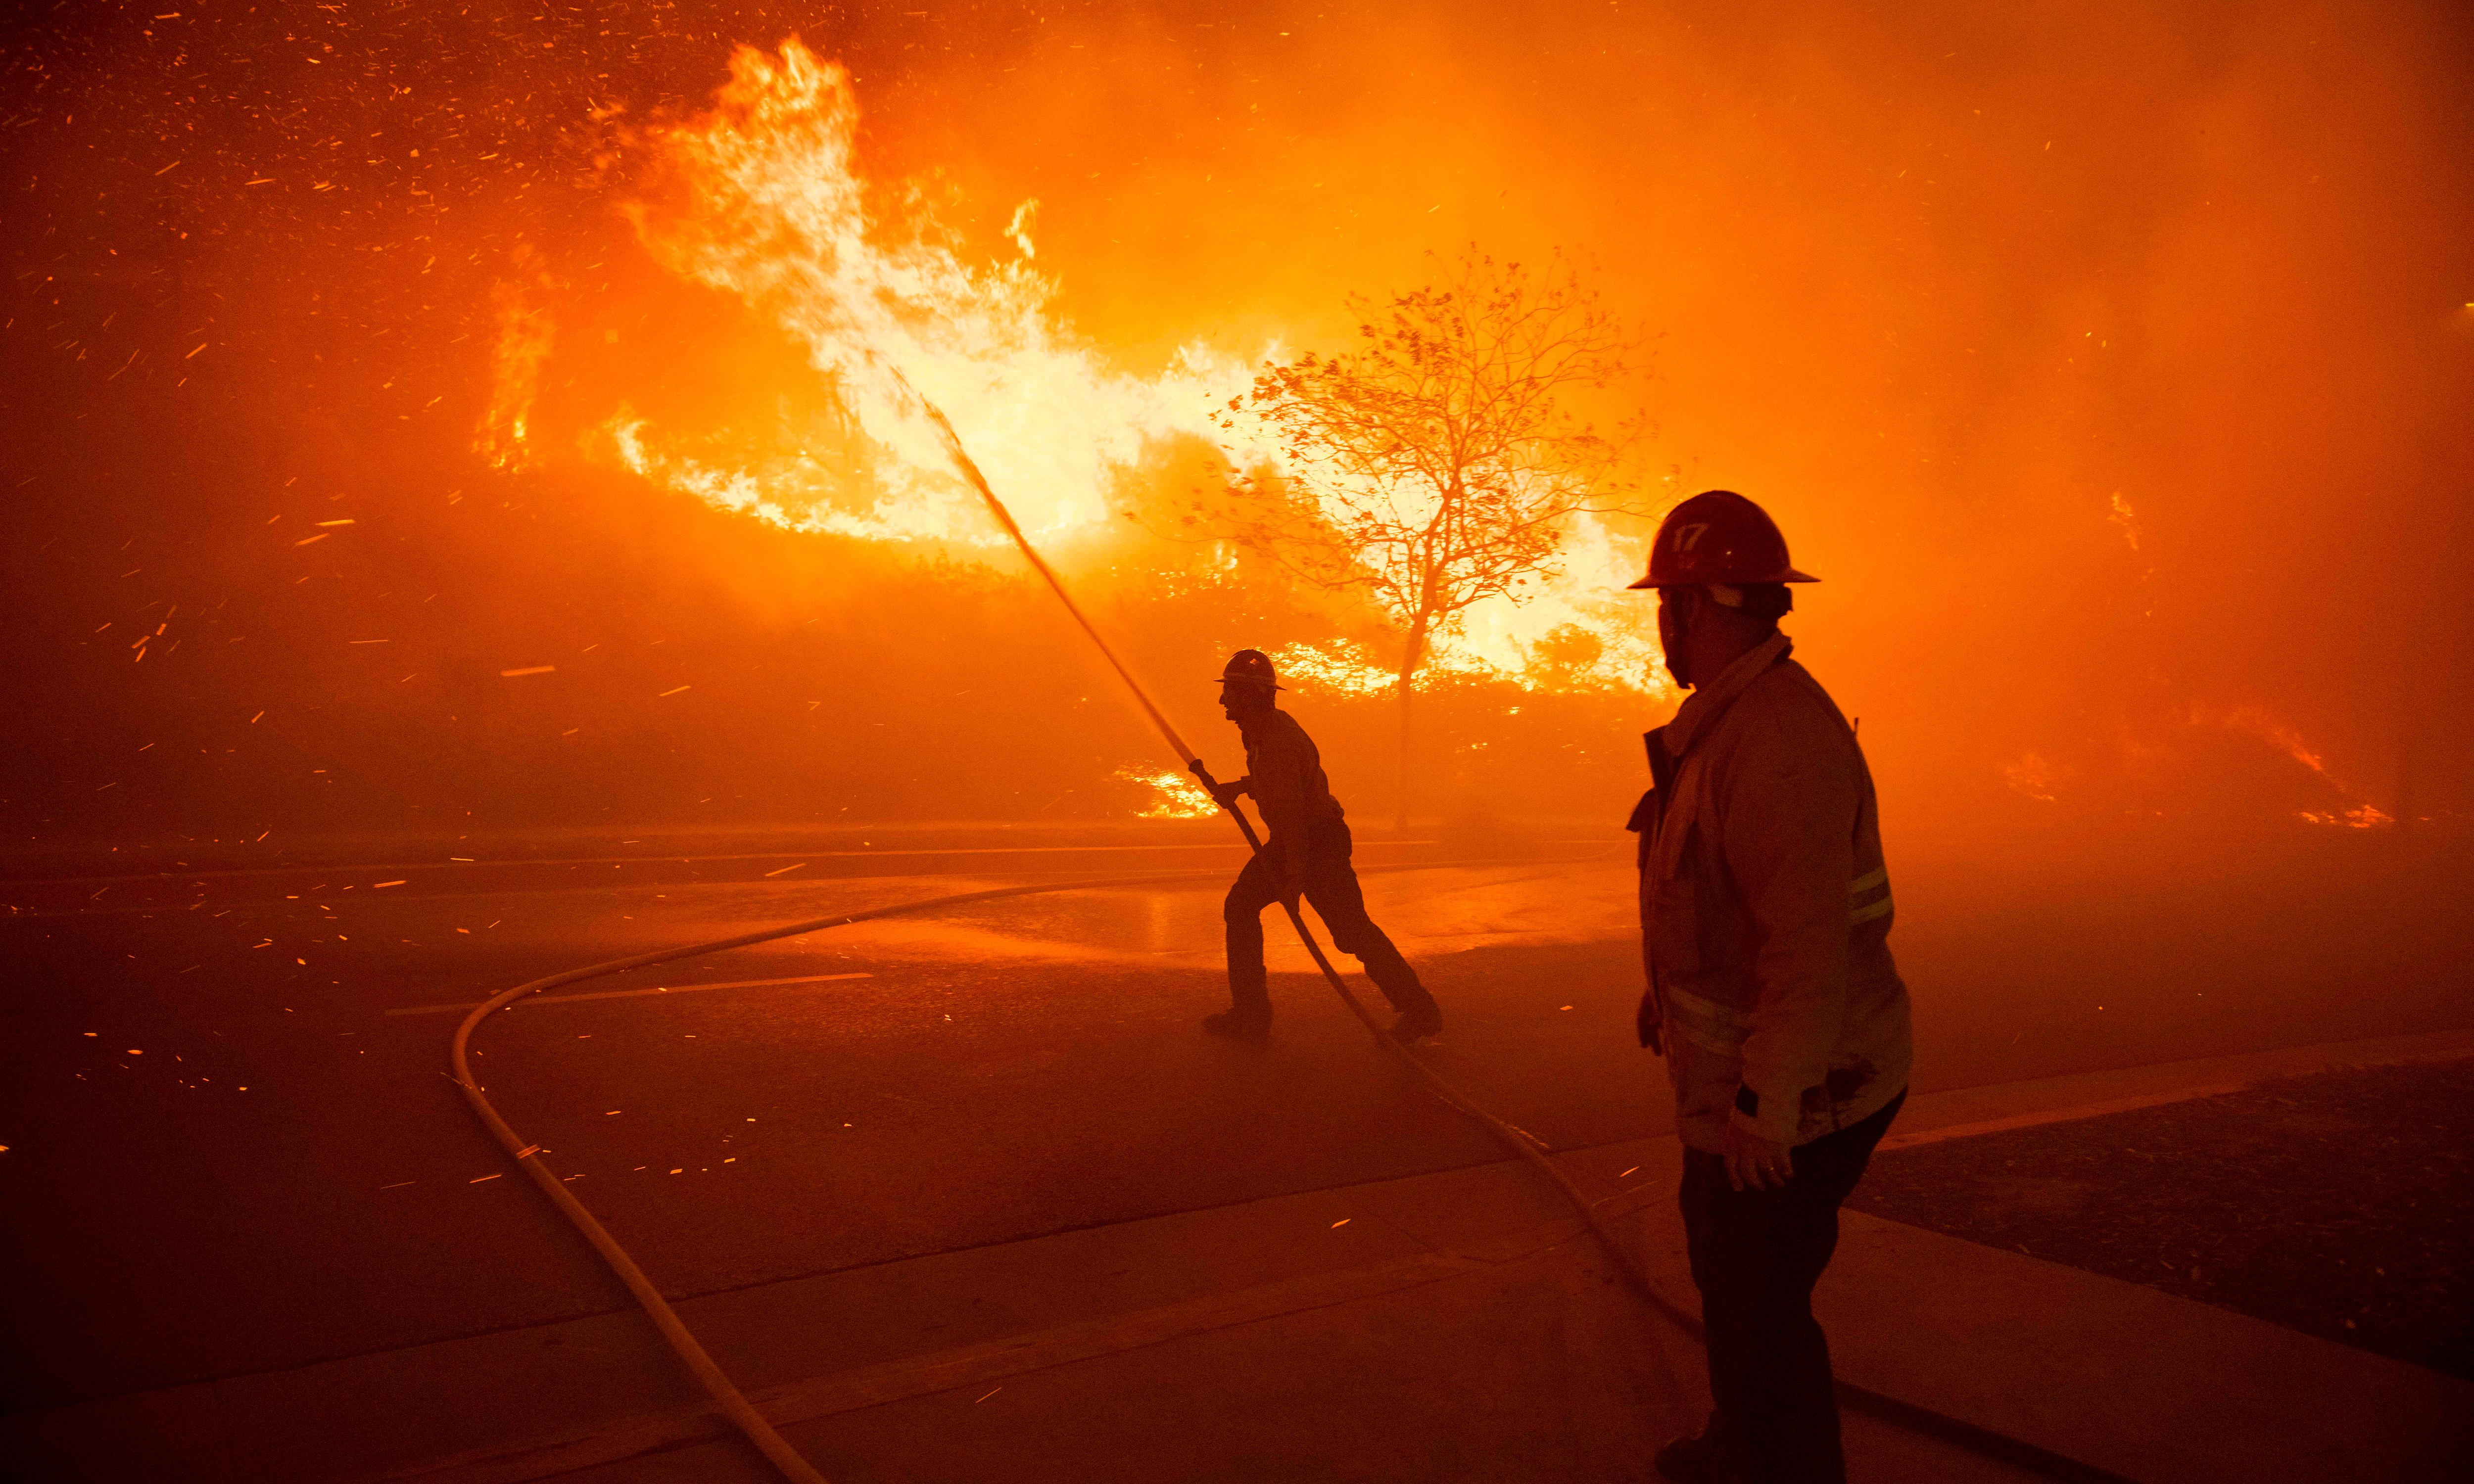 California wildfire spreads as fears mount over further power shutoffs